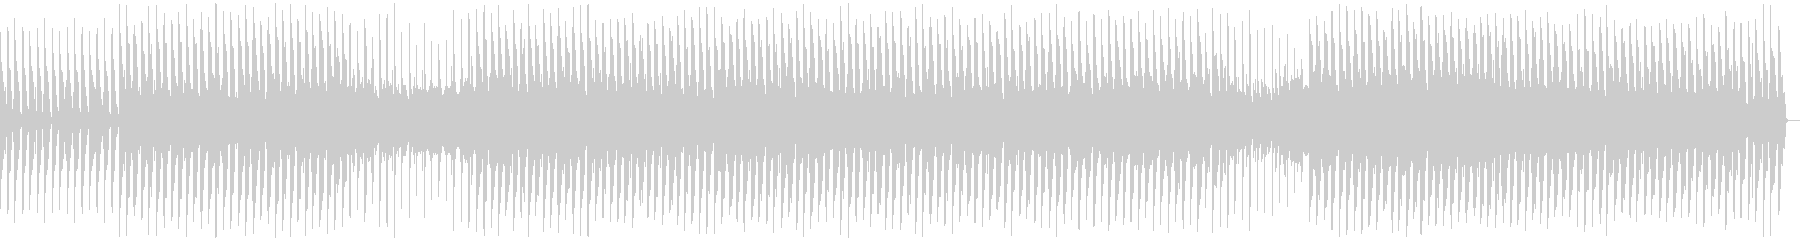 It is a good royal road techno's unreproduced waveform